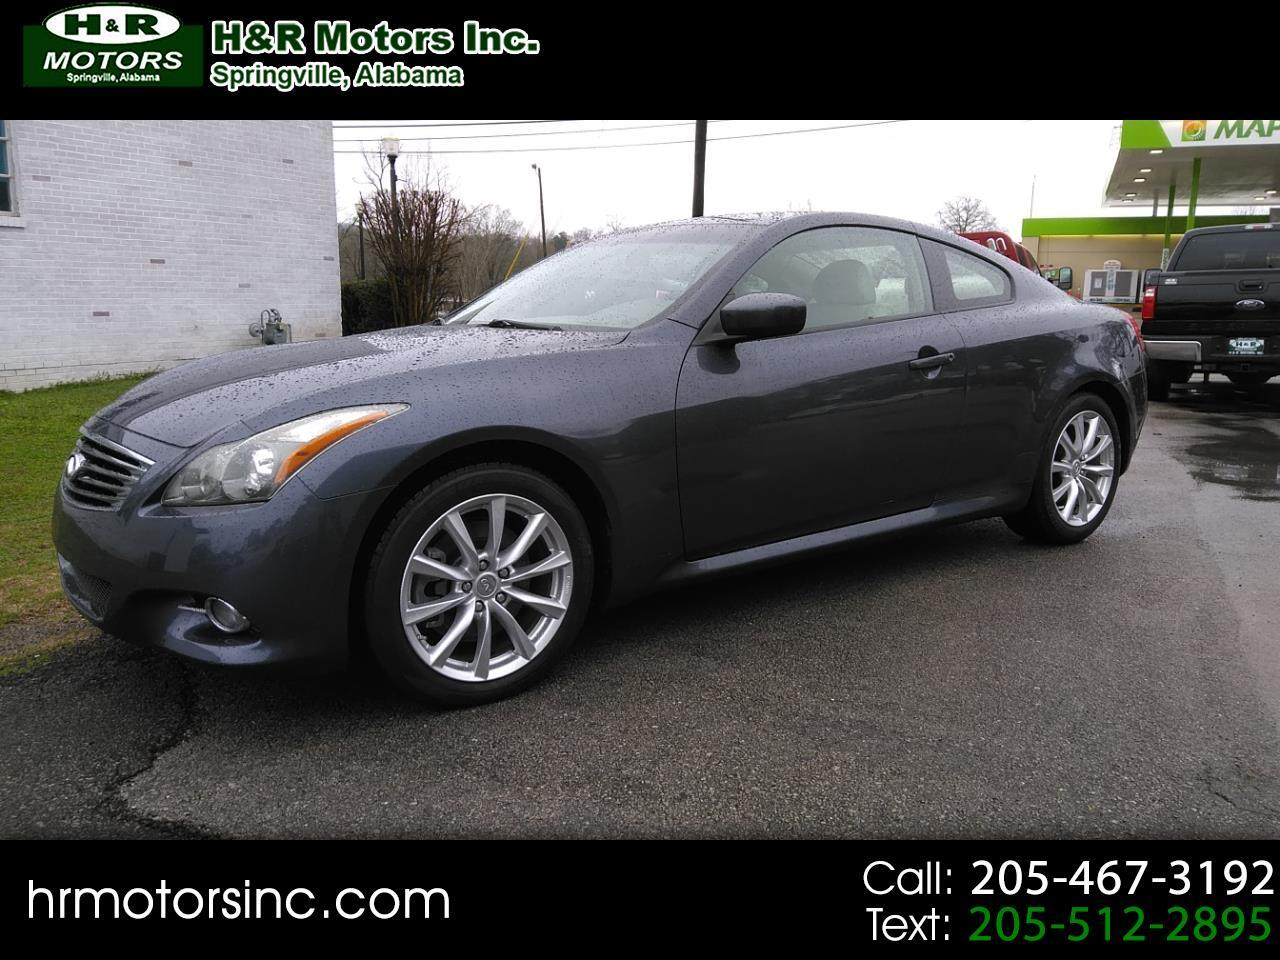 2011 Infiniti G37 Coupe BASE